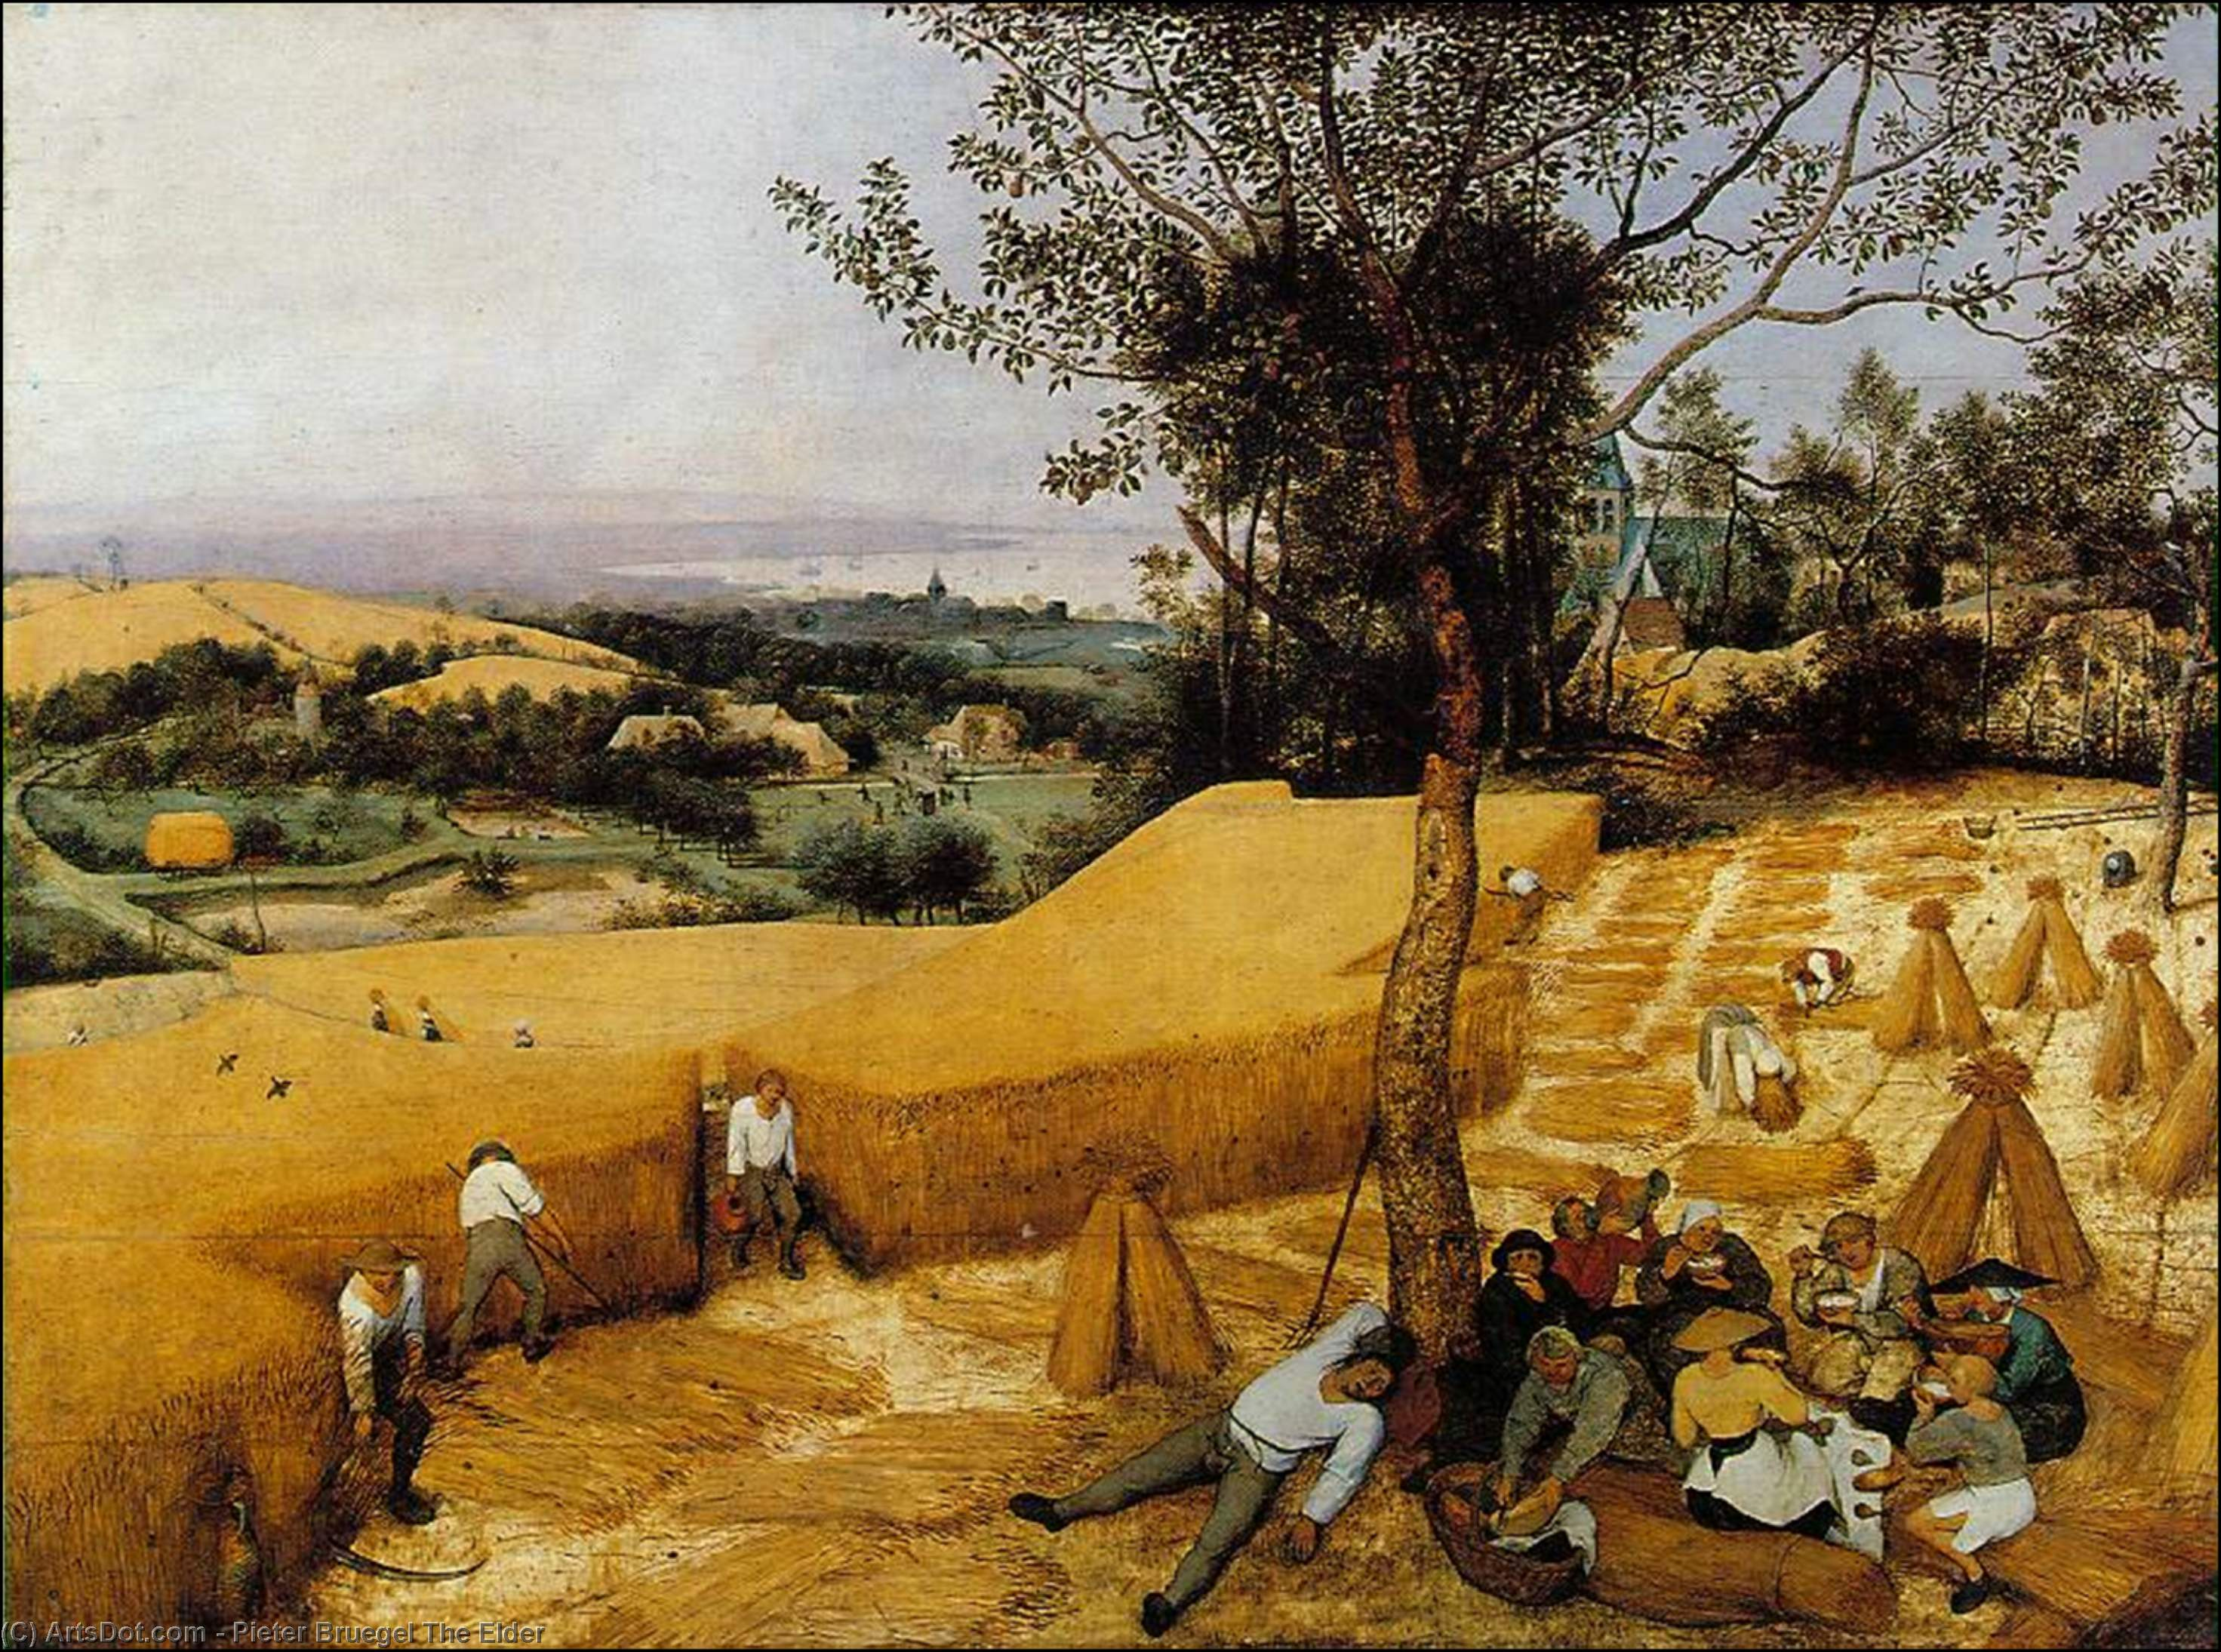 Wikioo.org - The Encyclopedia of Fine Arts - Painting, Artwork by Pieter Bruegel The Elder - The Harvesters